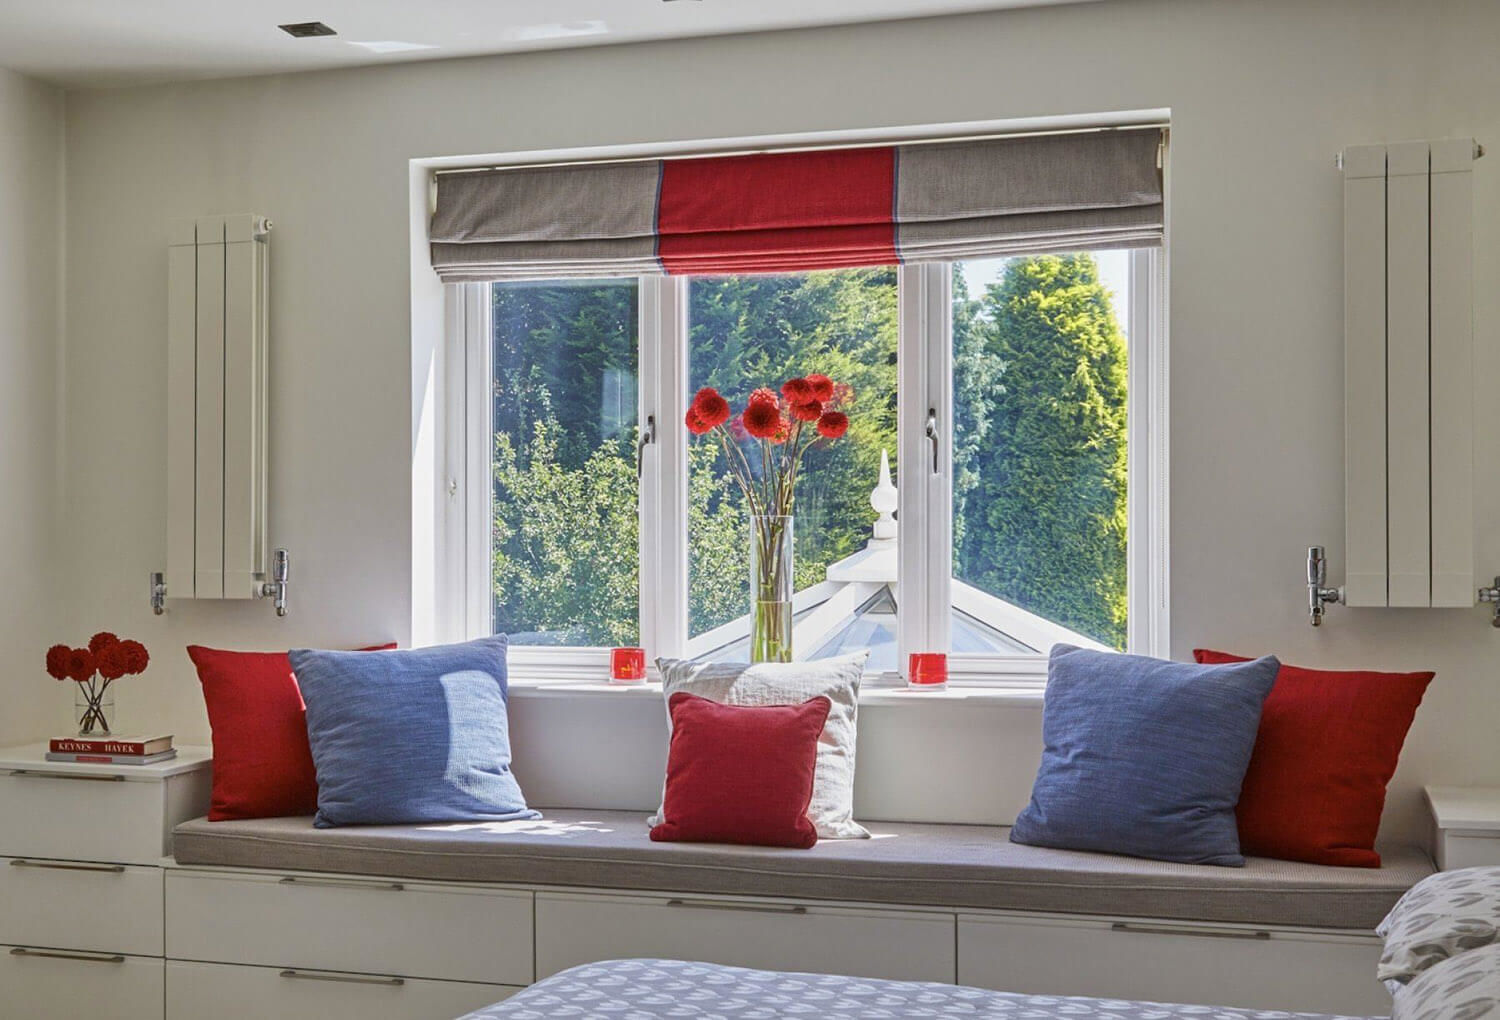 Why uPVC Windows and Doors are Trending?